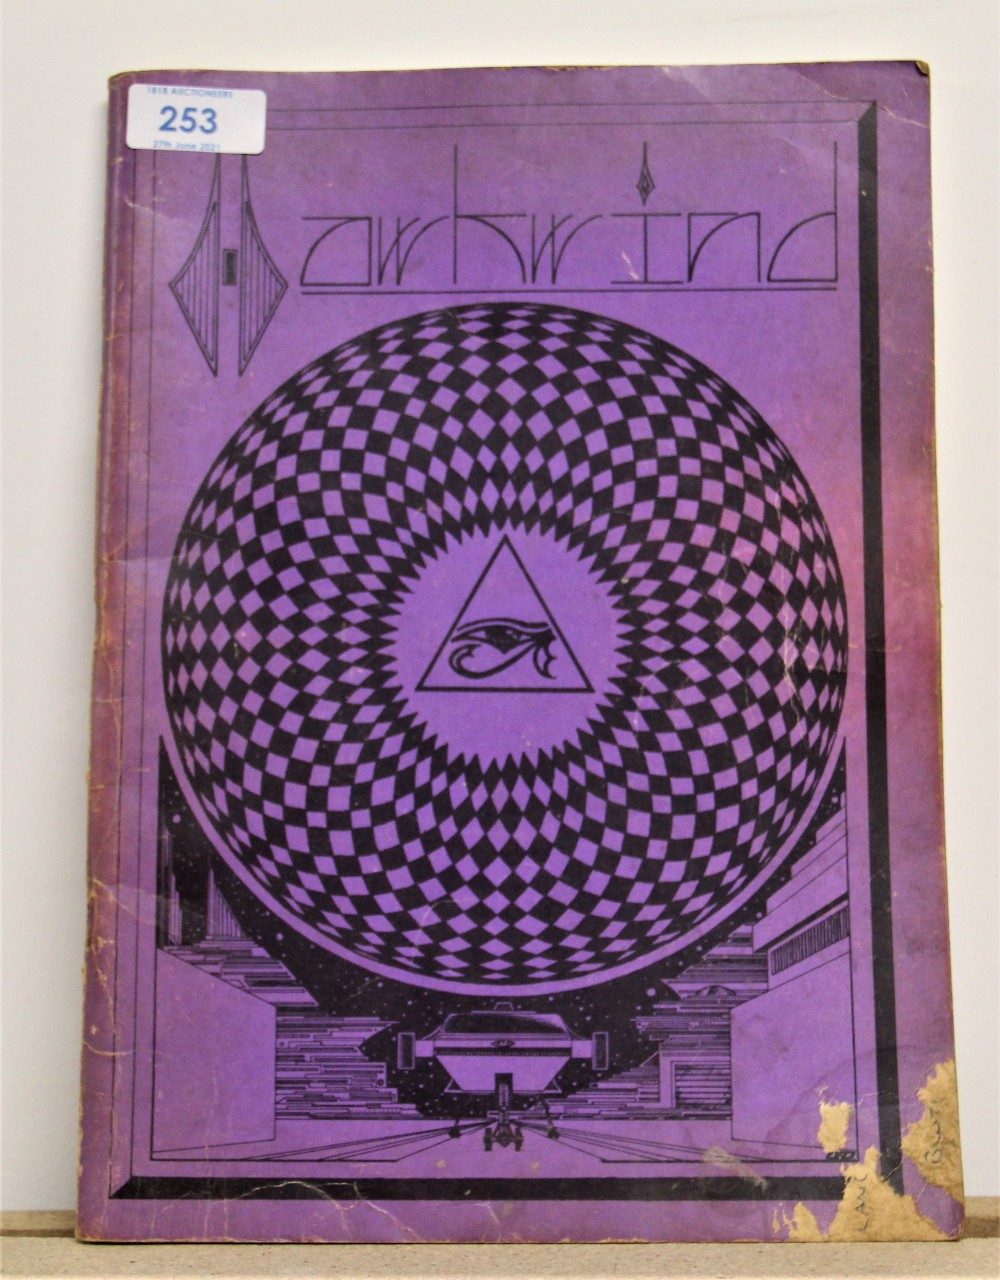 A signed Hawkwind / illustrated lyric book - some wear but regardless a really nice piece